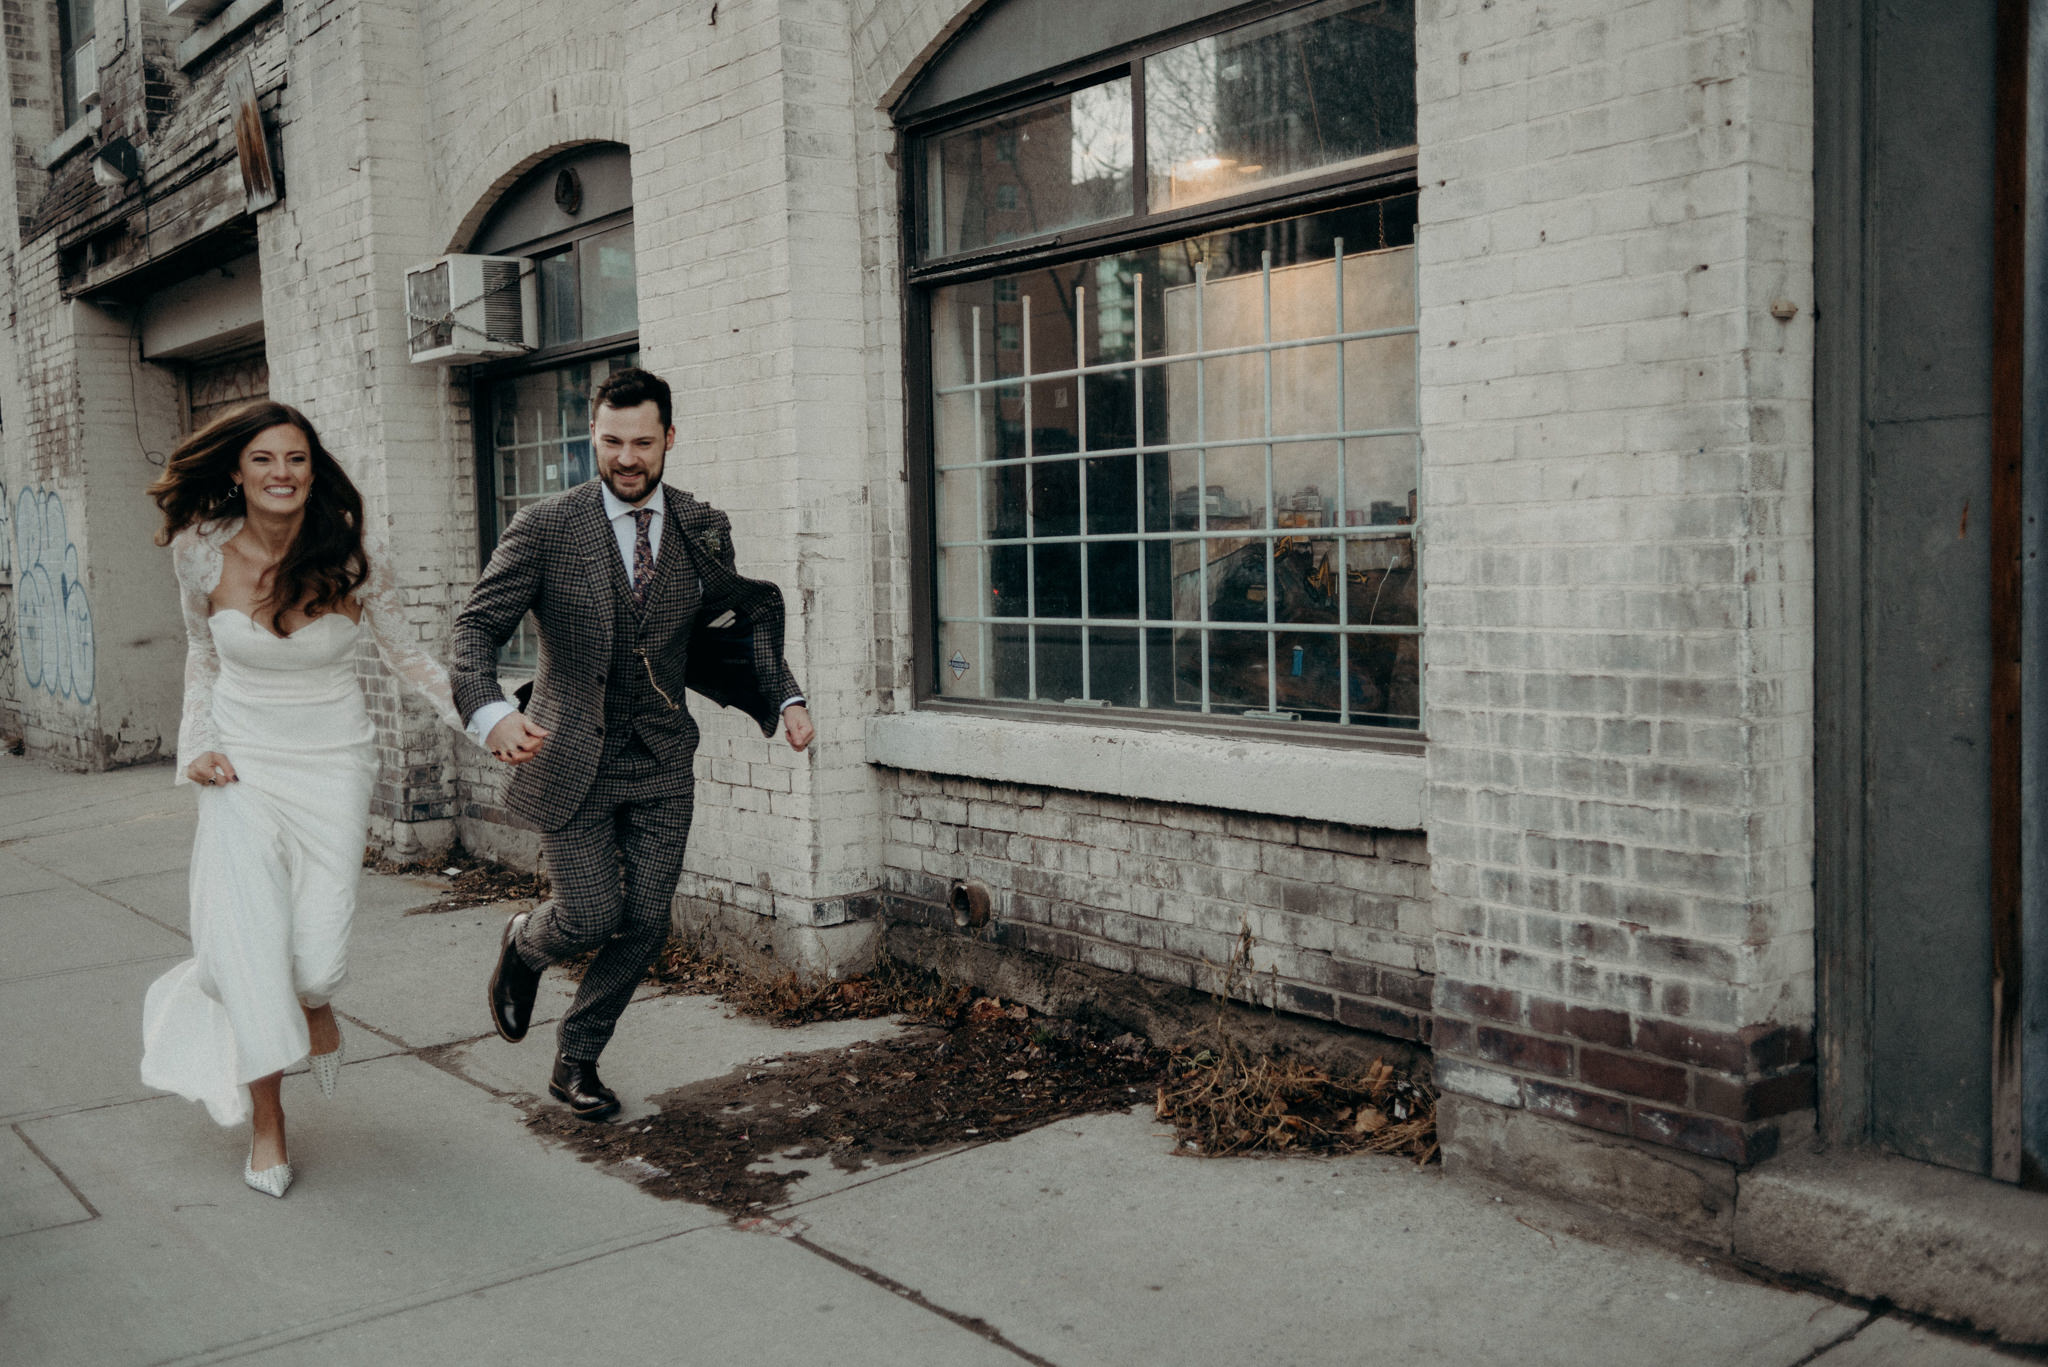 bride and groom running on sidewalk holding hands